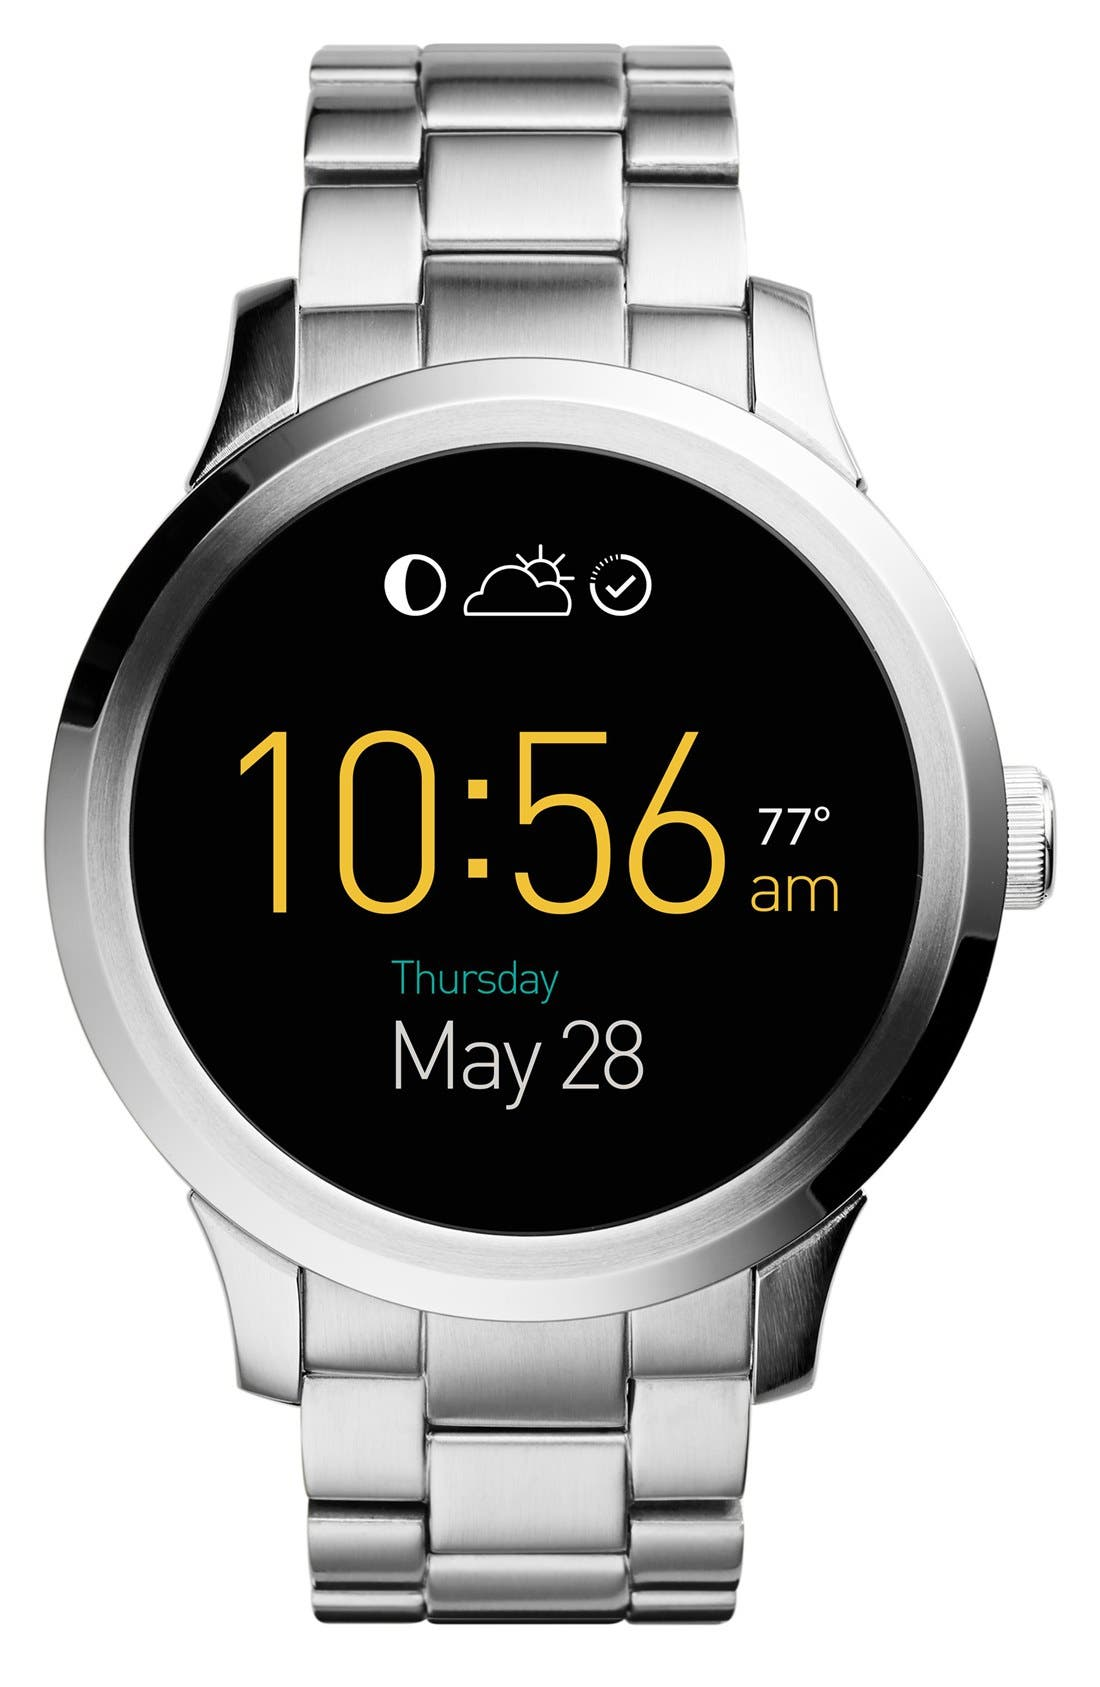 Main Image - Fossil 'Fossil Q - Founder' Round Bracelet Smart Watch, 47mm